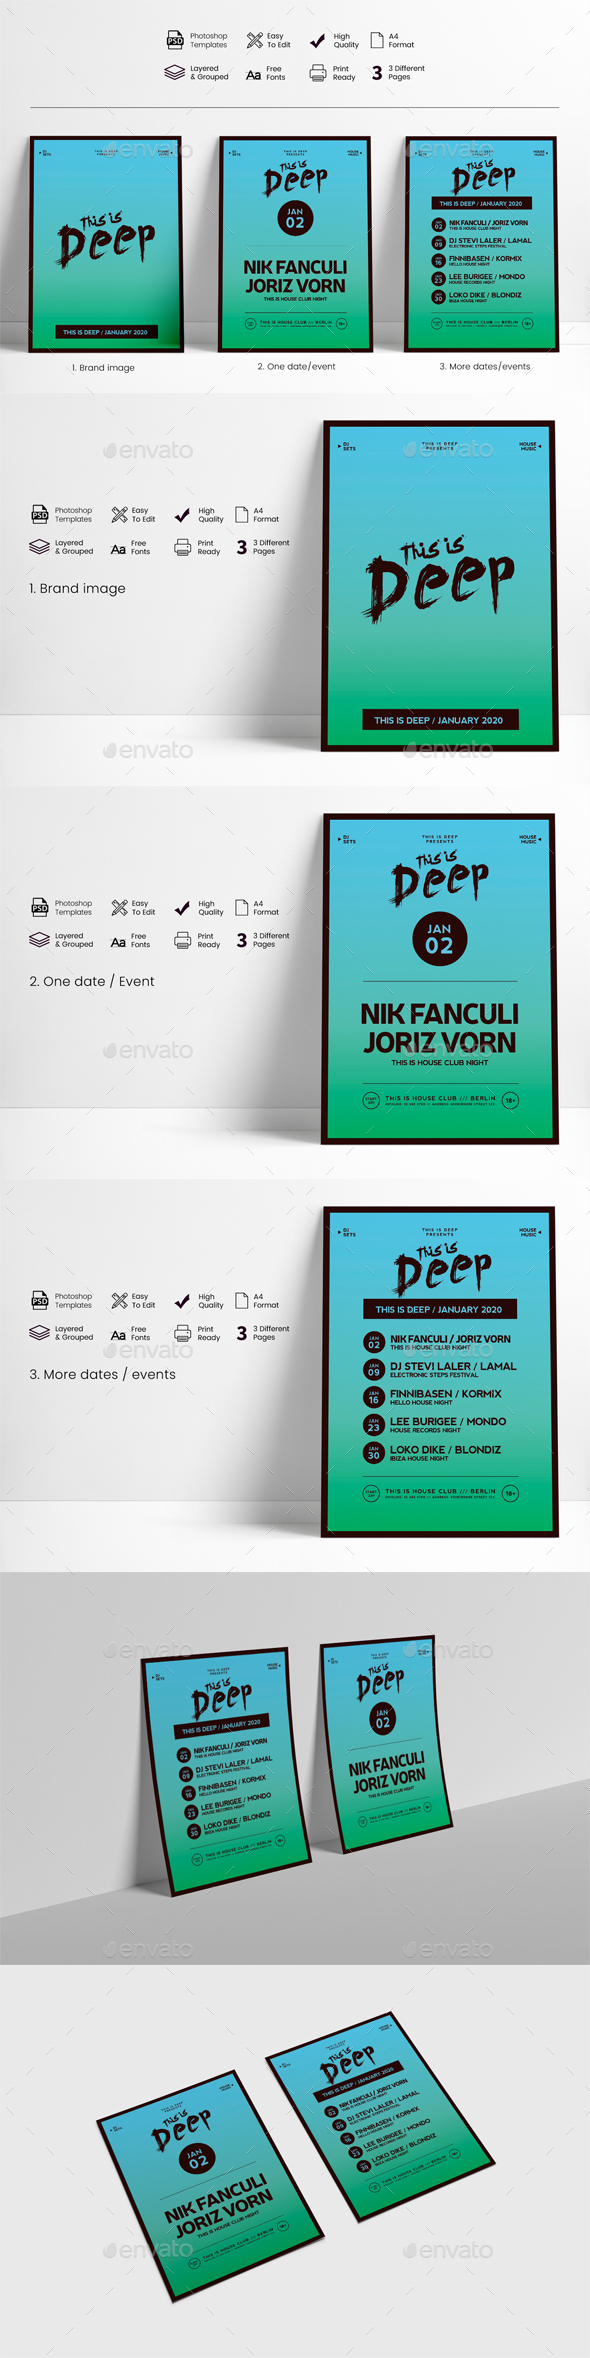 Flyers PSD – This Is Deep Match and Festival Flyer – Download